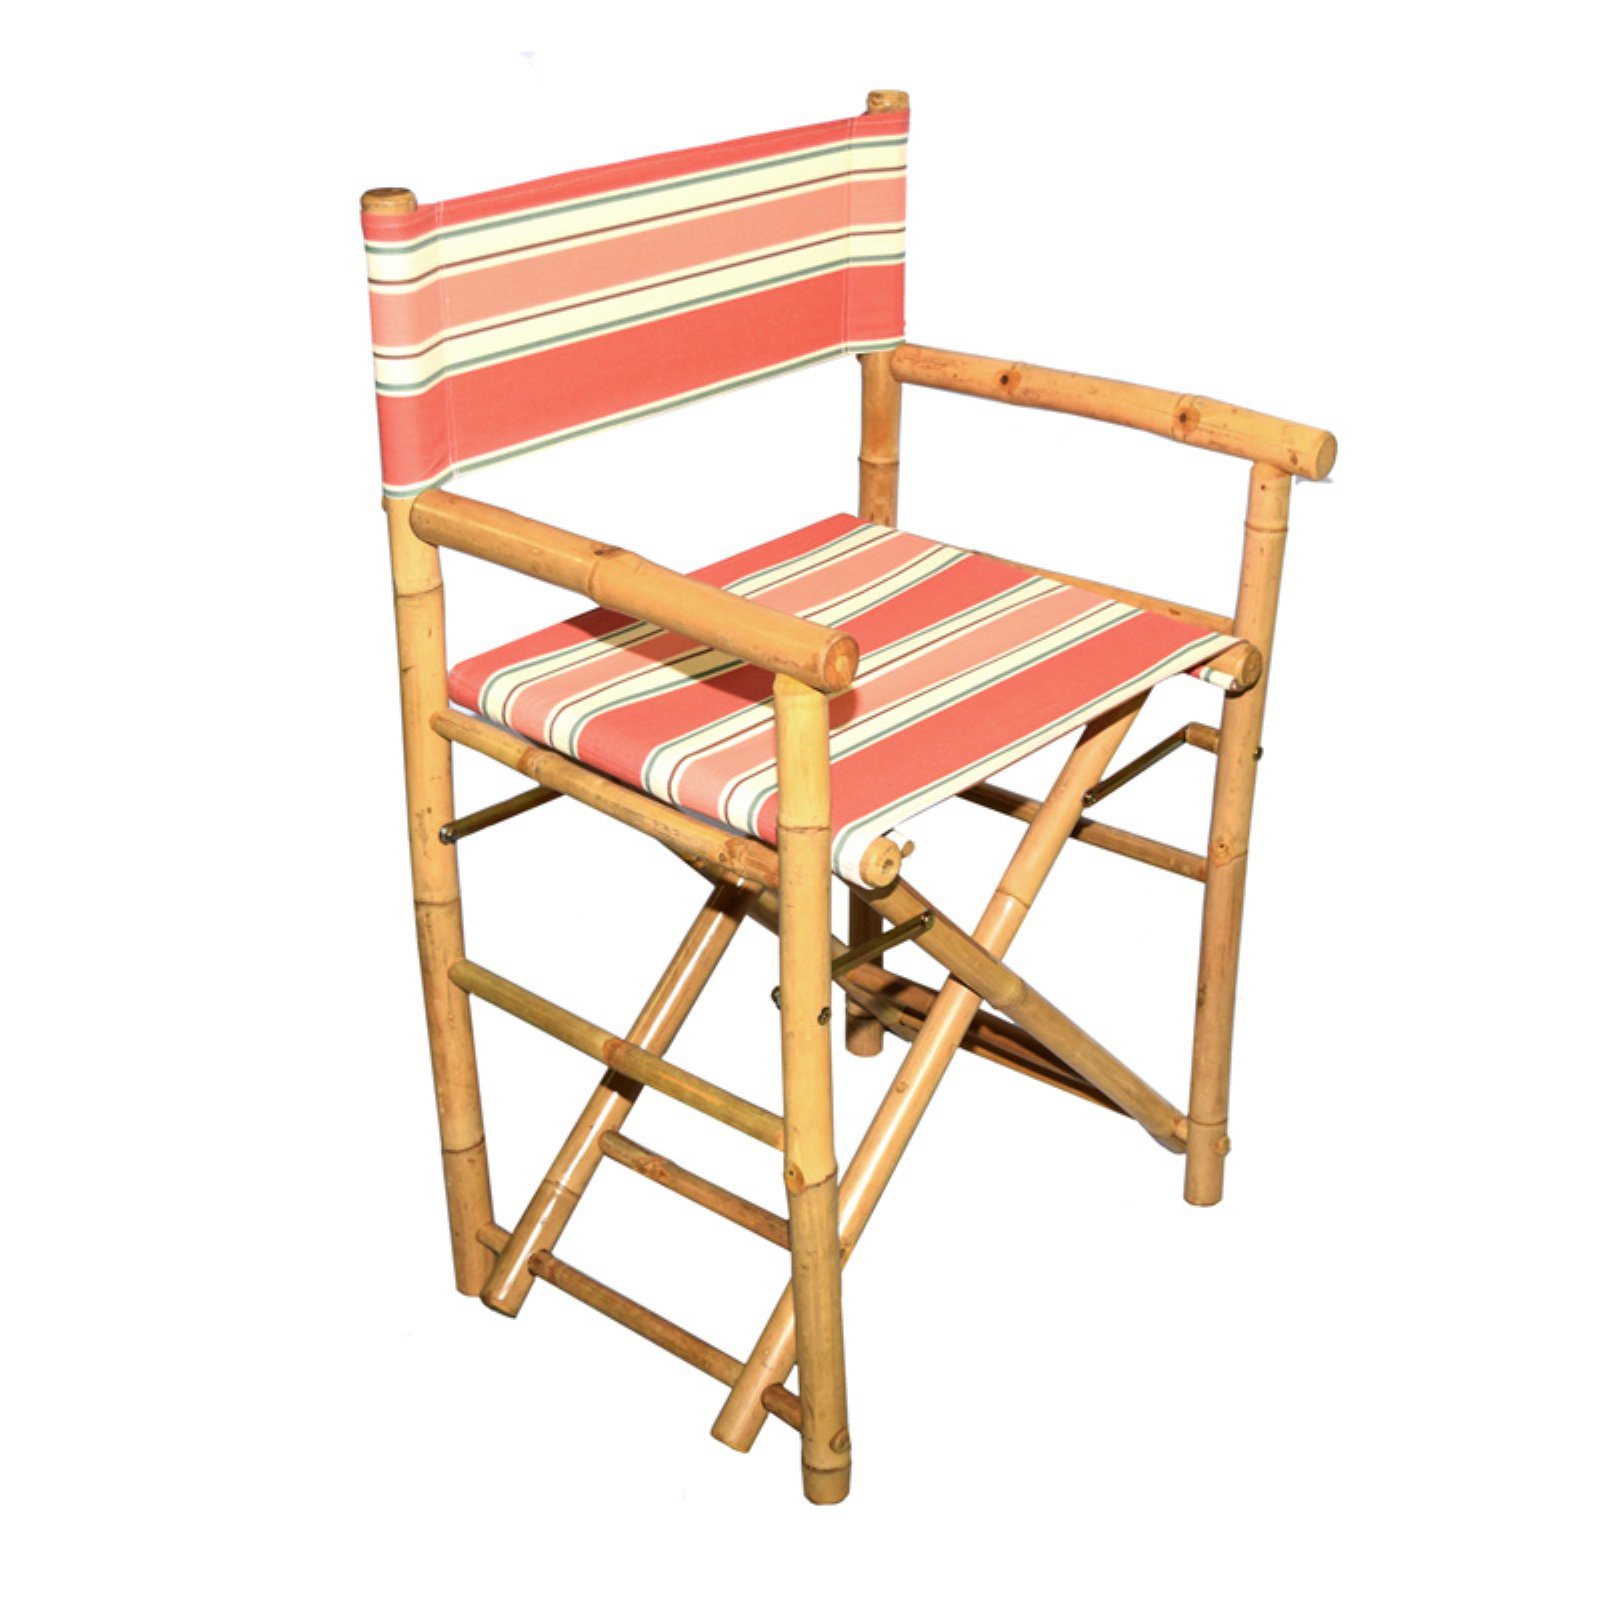 bamboo directors chairs chair covers hire wirral bamboo54 folding low with canvas cover set of 2 walmart com